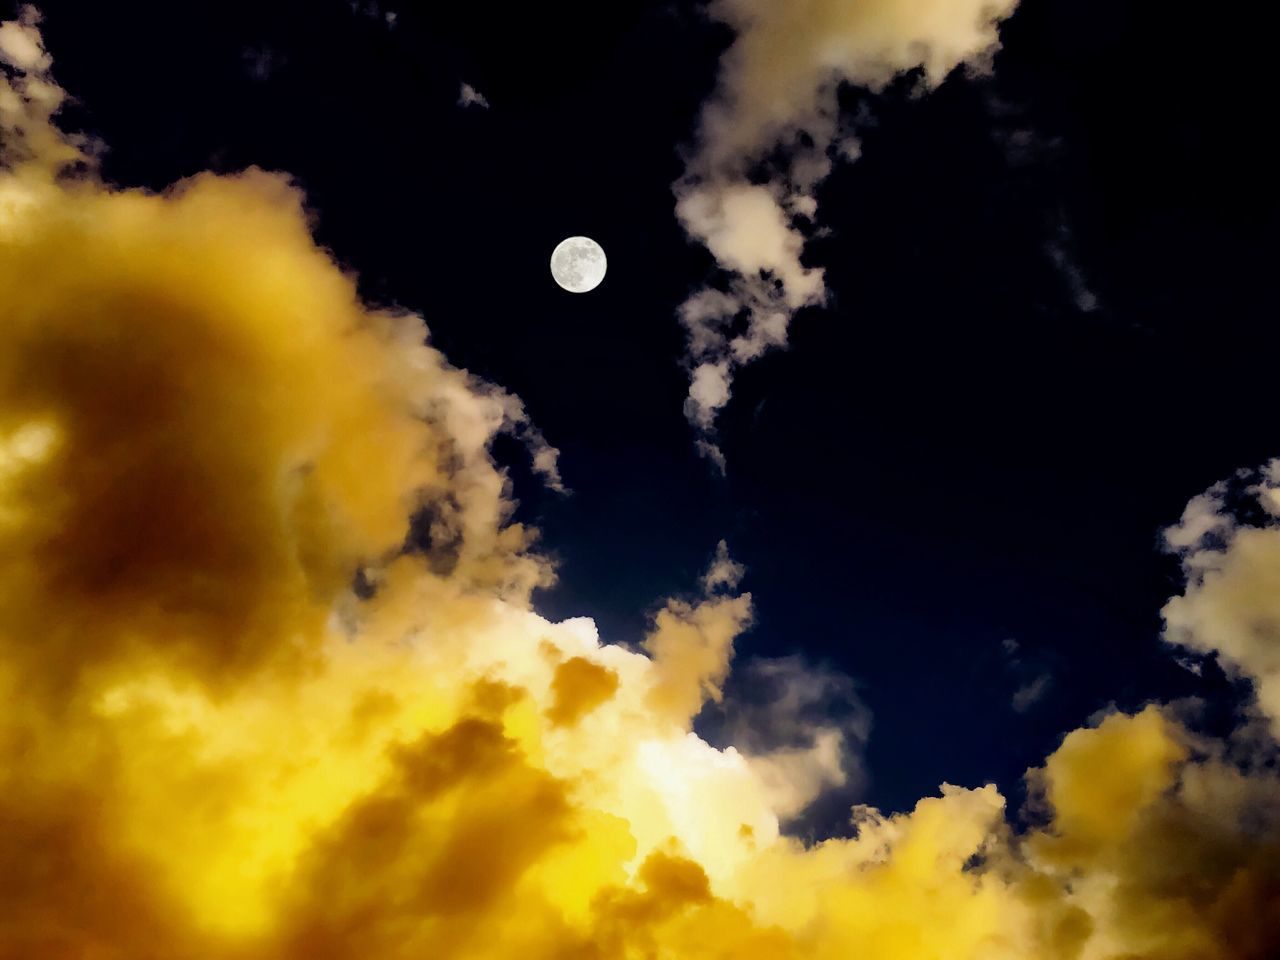 LOW ANGLE VIEW OF MOON AGAINST CLOUDY SKY